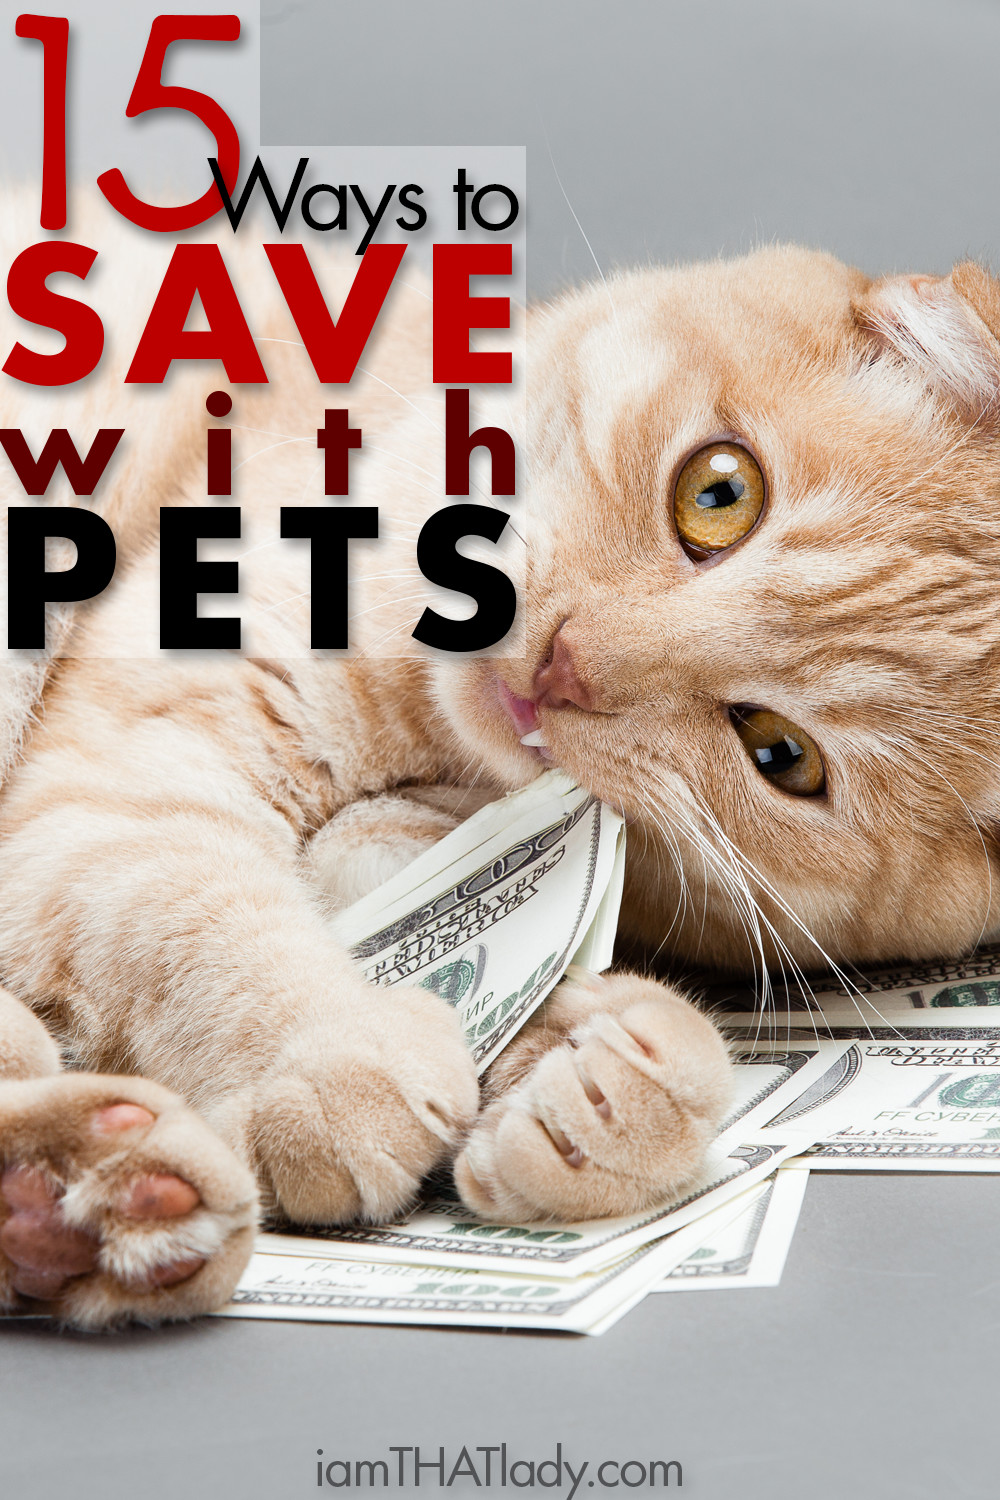 Save money on pets